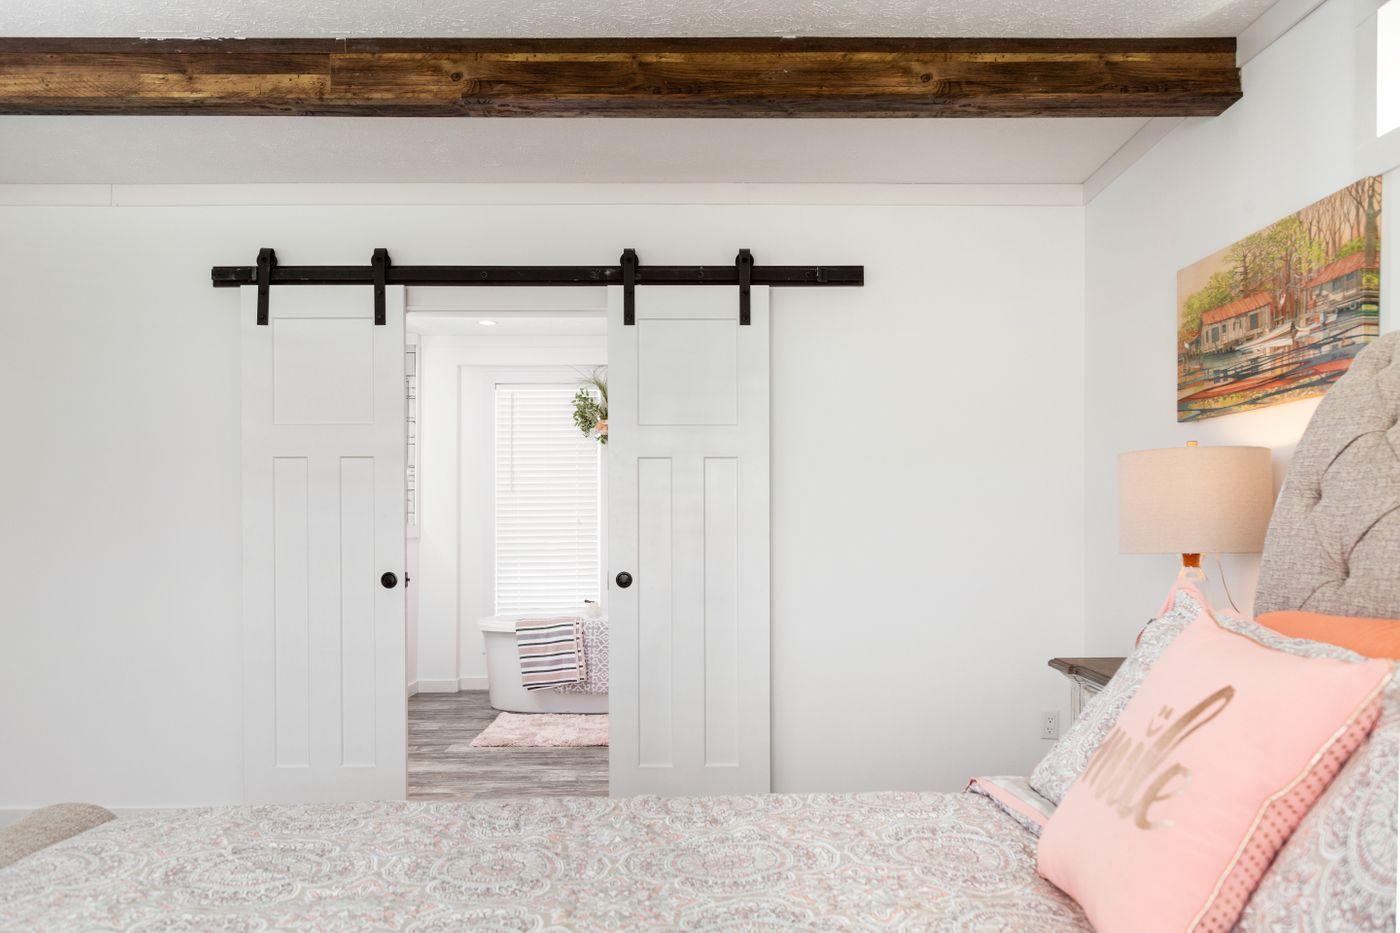 The Lulabelle Bedroom